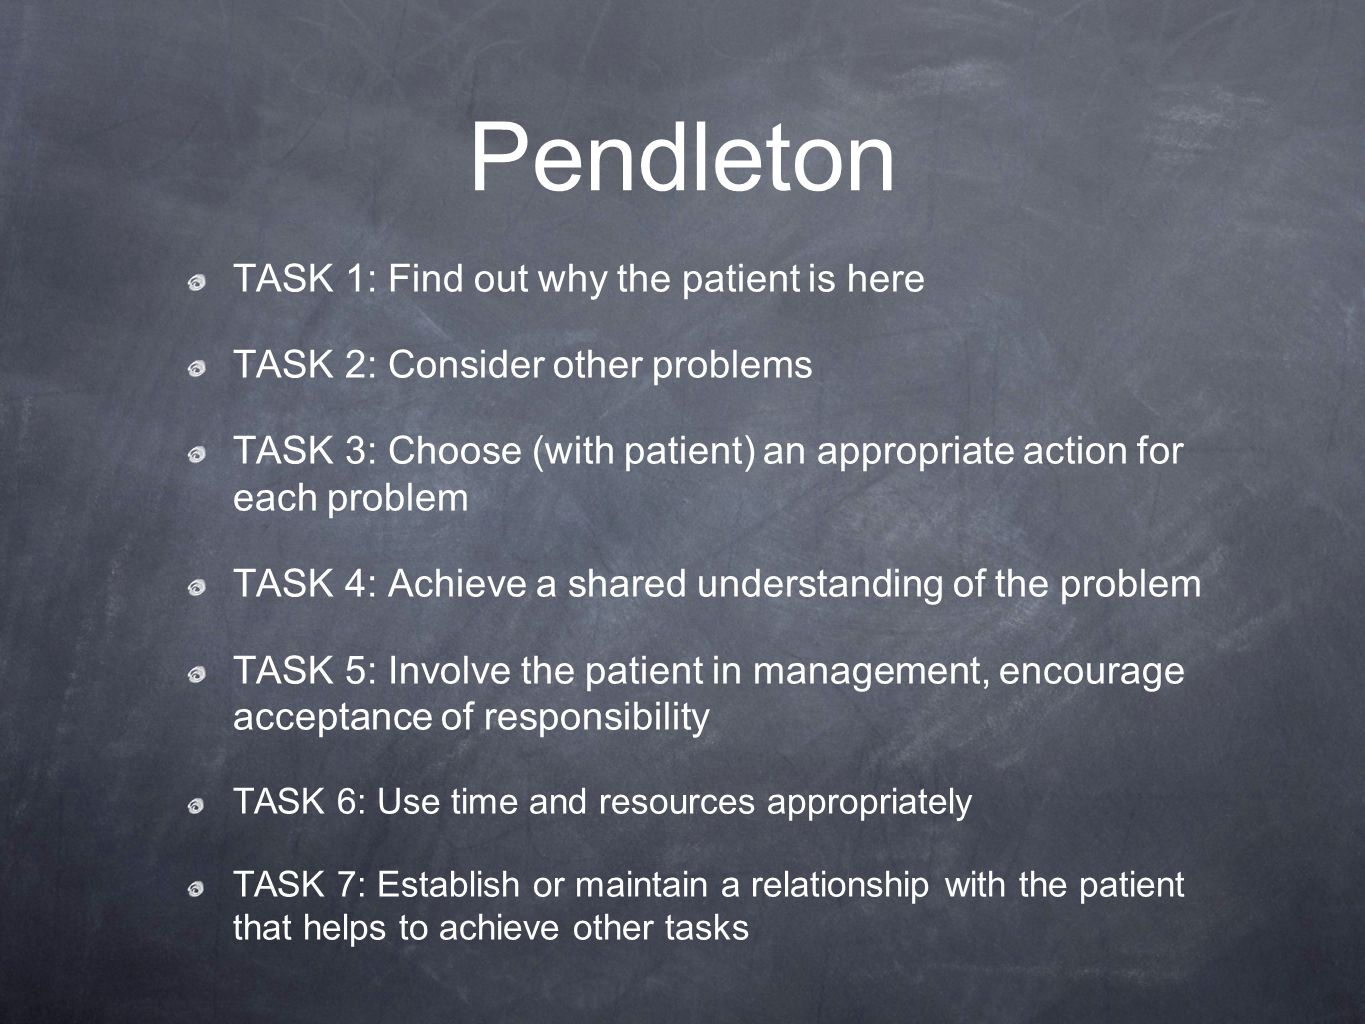 Pendleton TASK 1: Find out why the patient is here